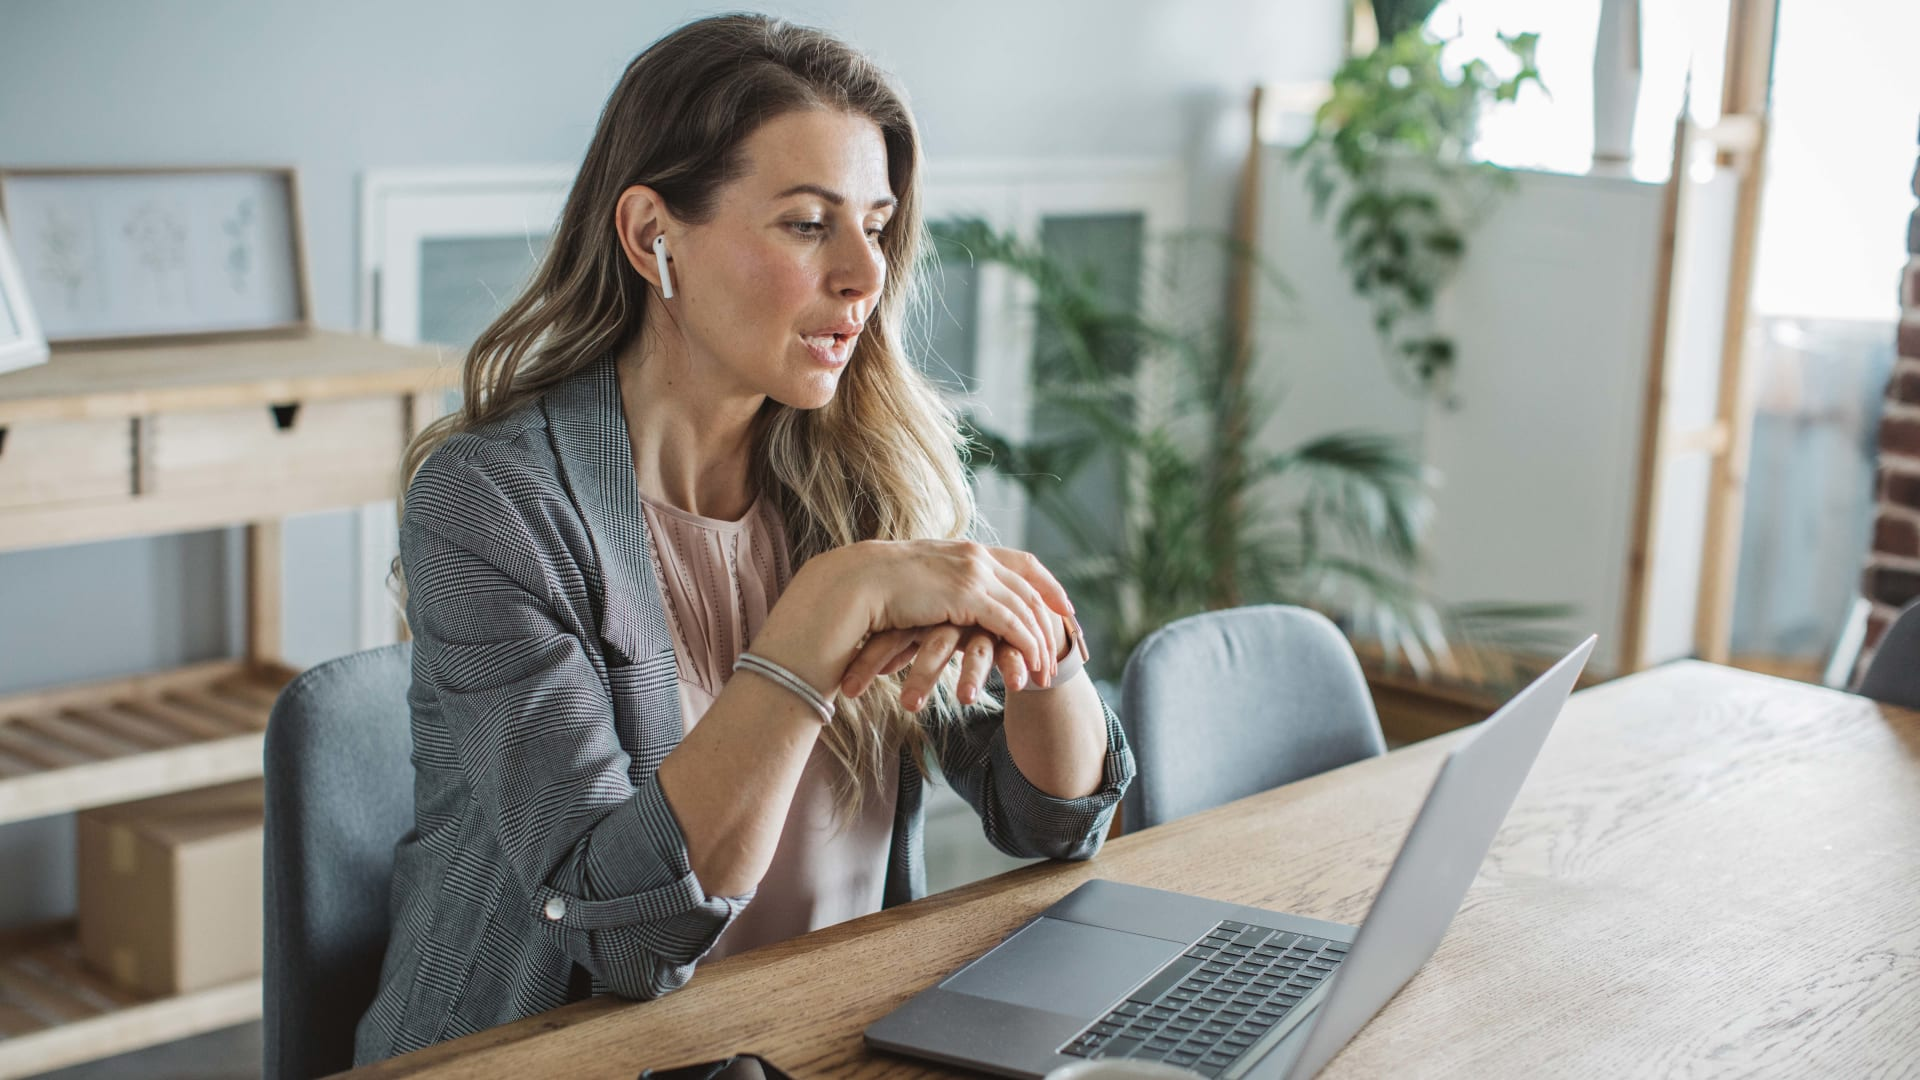 4 Things Managers Are Doing Differently to Recruit and Hire Remotely